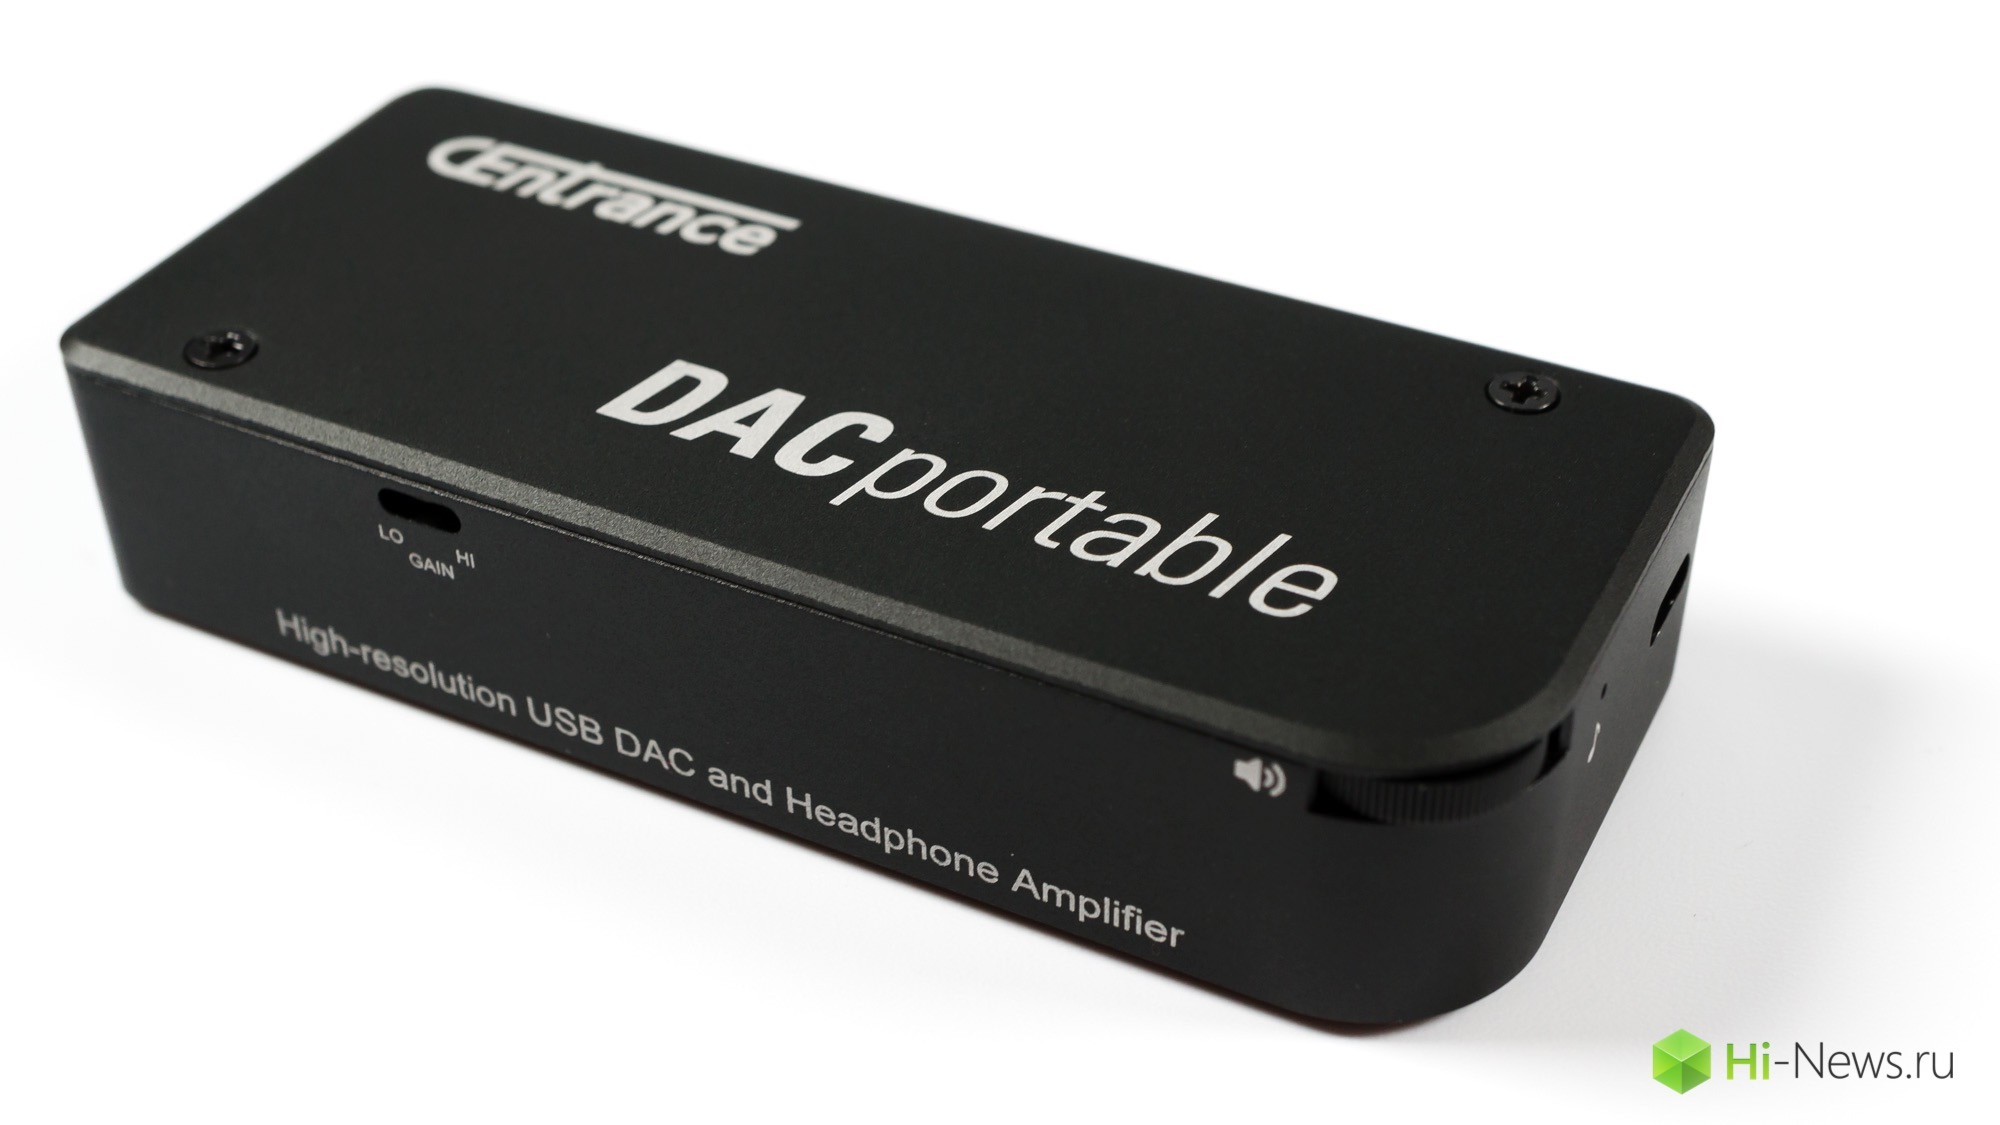 Browse portable DAC and headphone amplifier CEnrance DACPortable